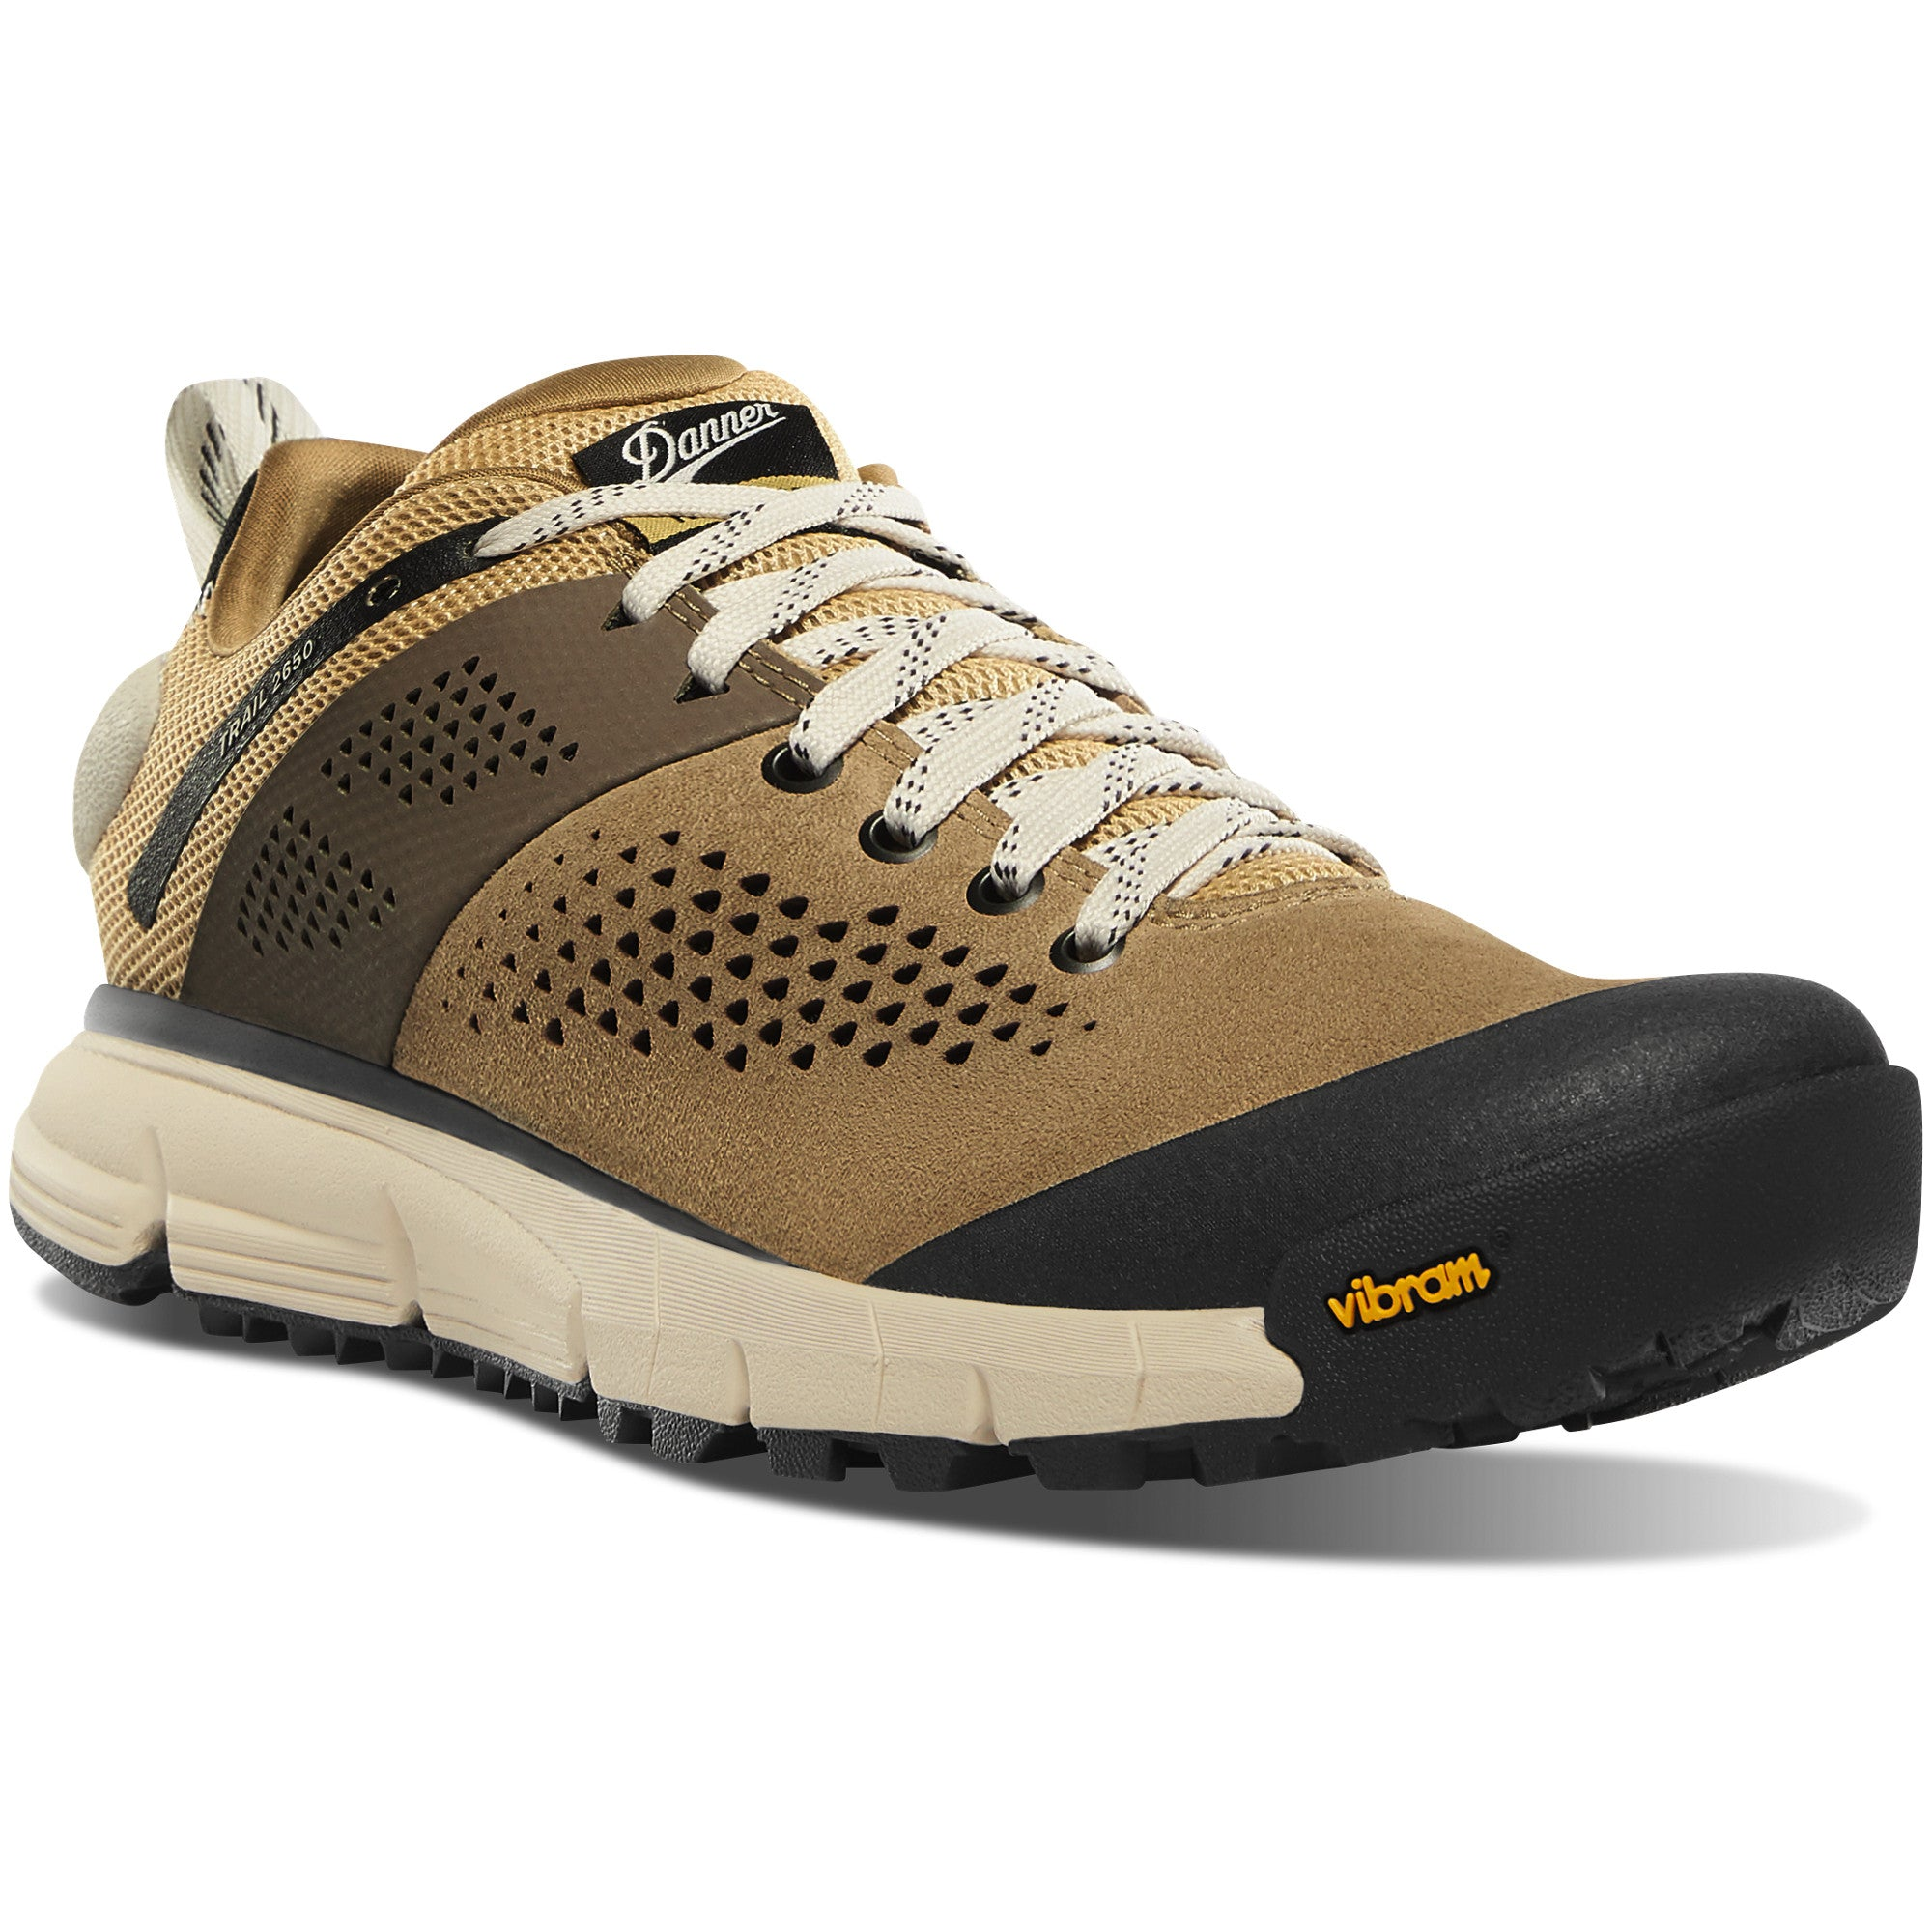 Trail 2650 - Women's